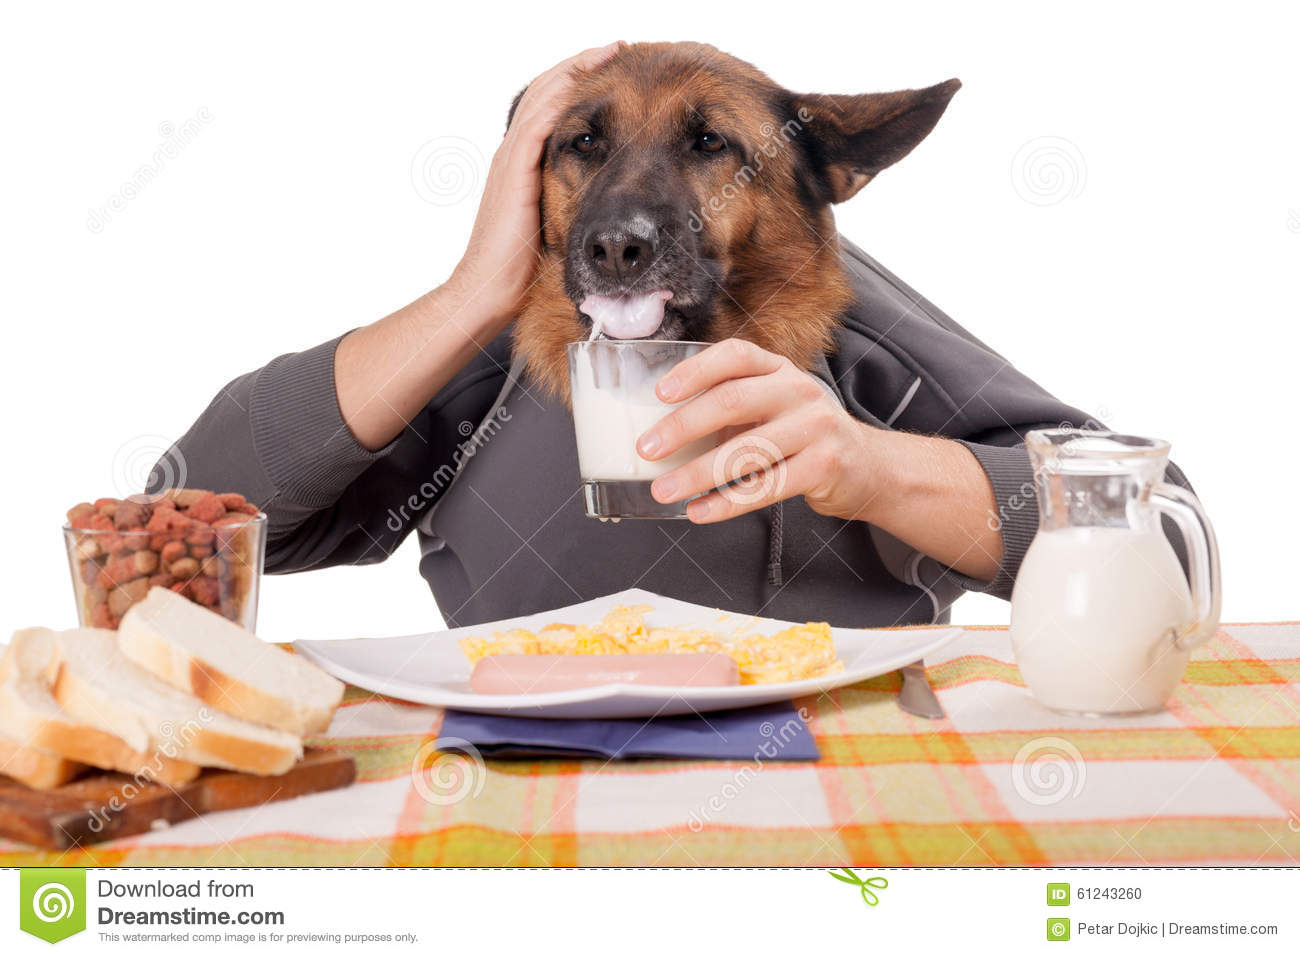 Funny German Shepherd Dog With Human Arms And Hands Drinking Milk